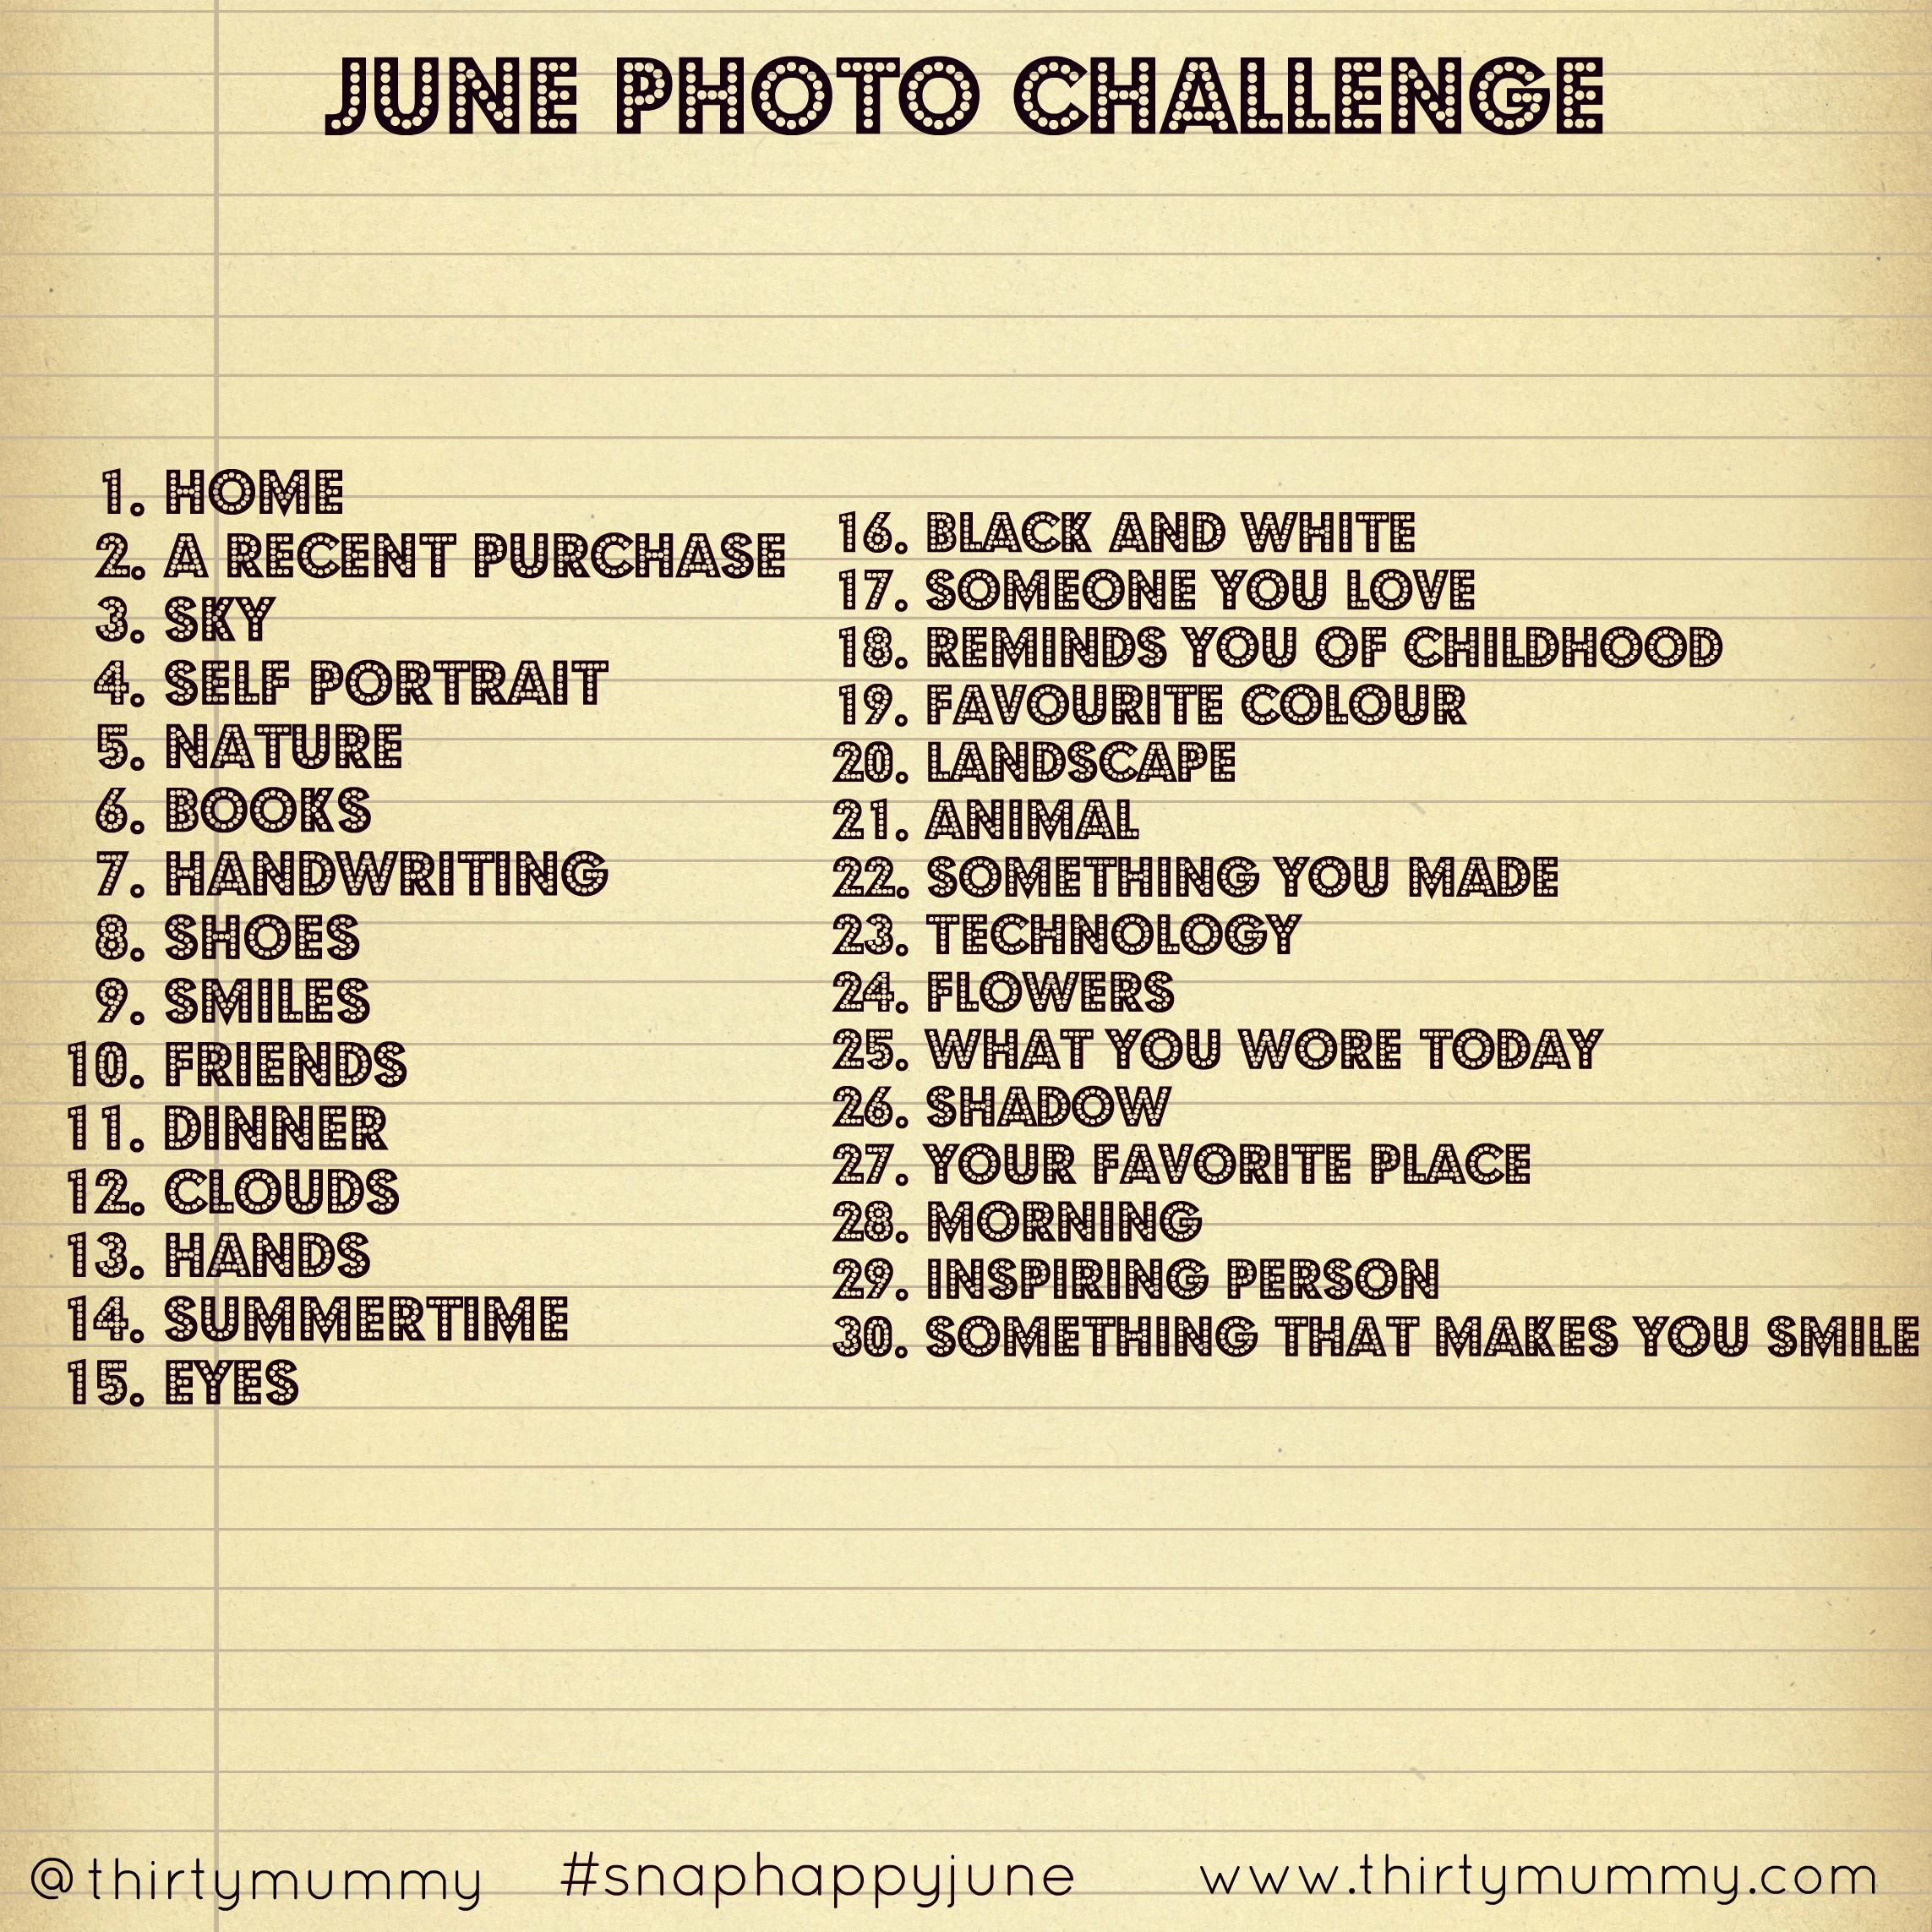 June Photo Challenge - Thirty